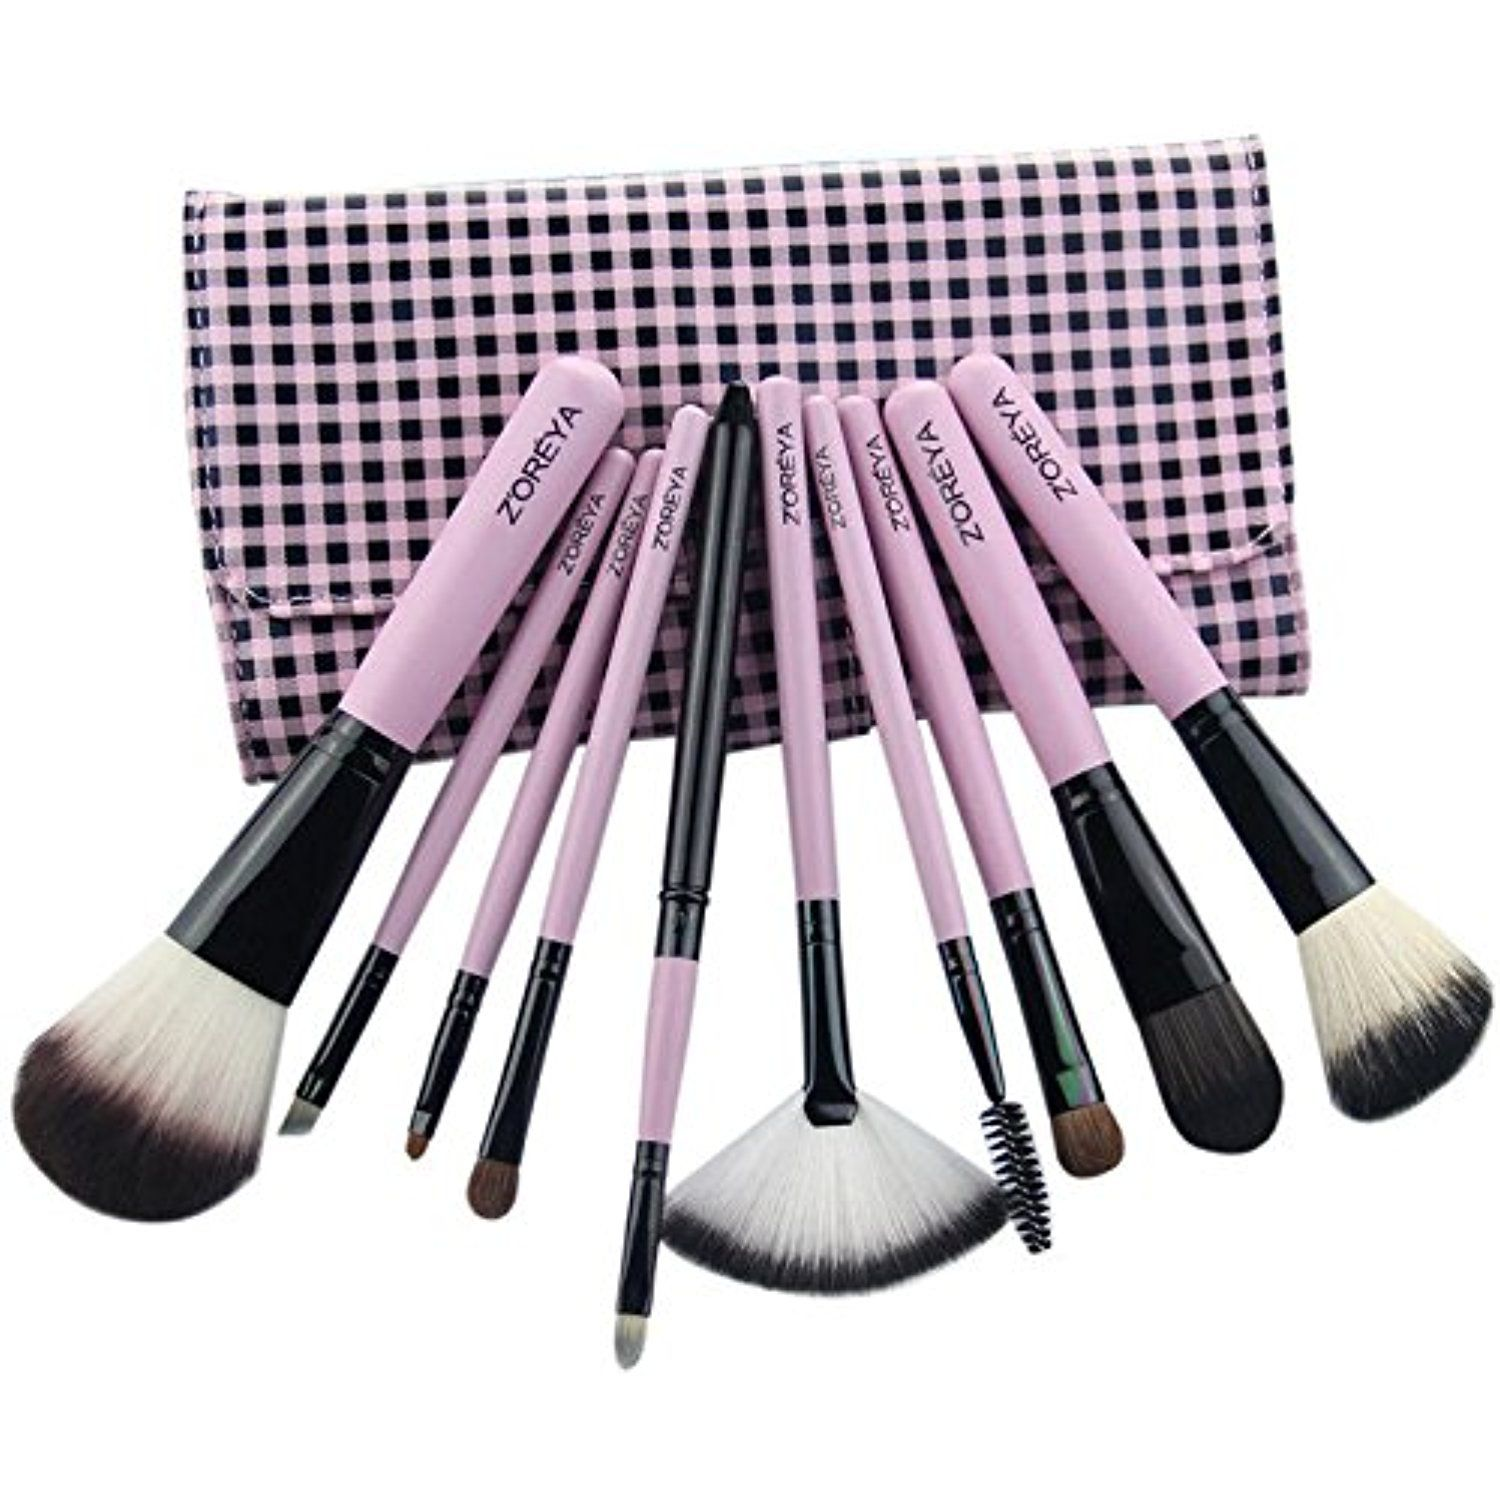 WOOD 10 PCS BEGINNER MAKEUP BRUSH SET,Horsehair